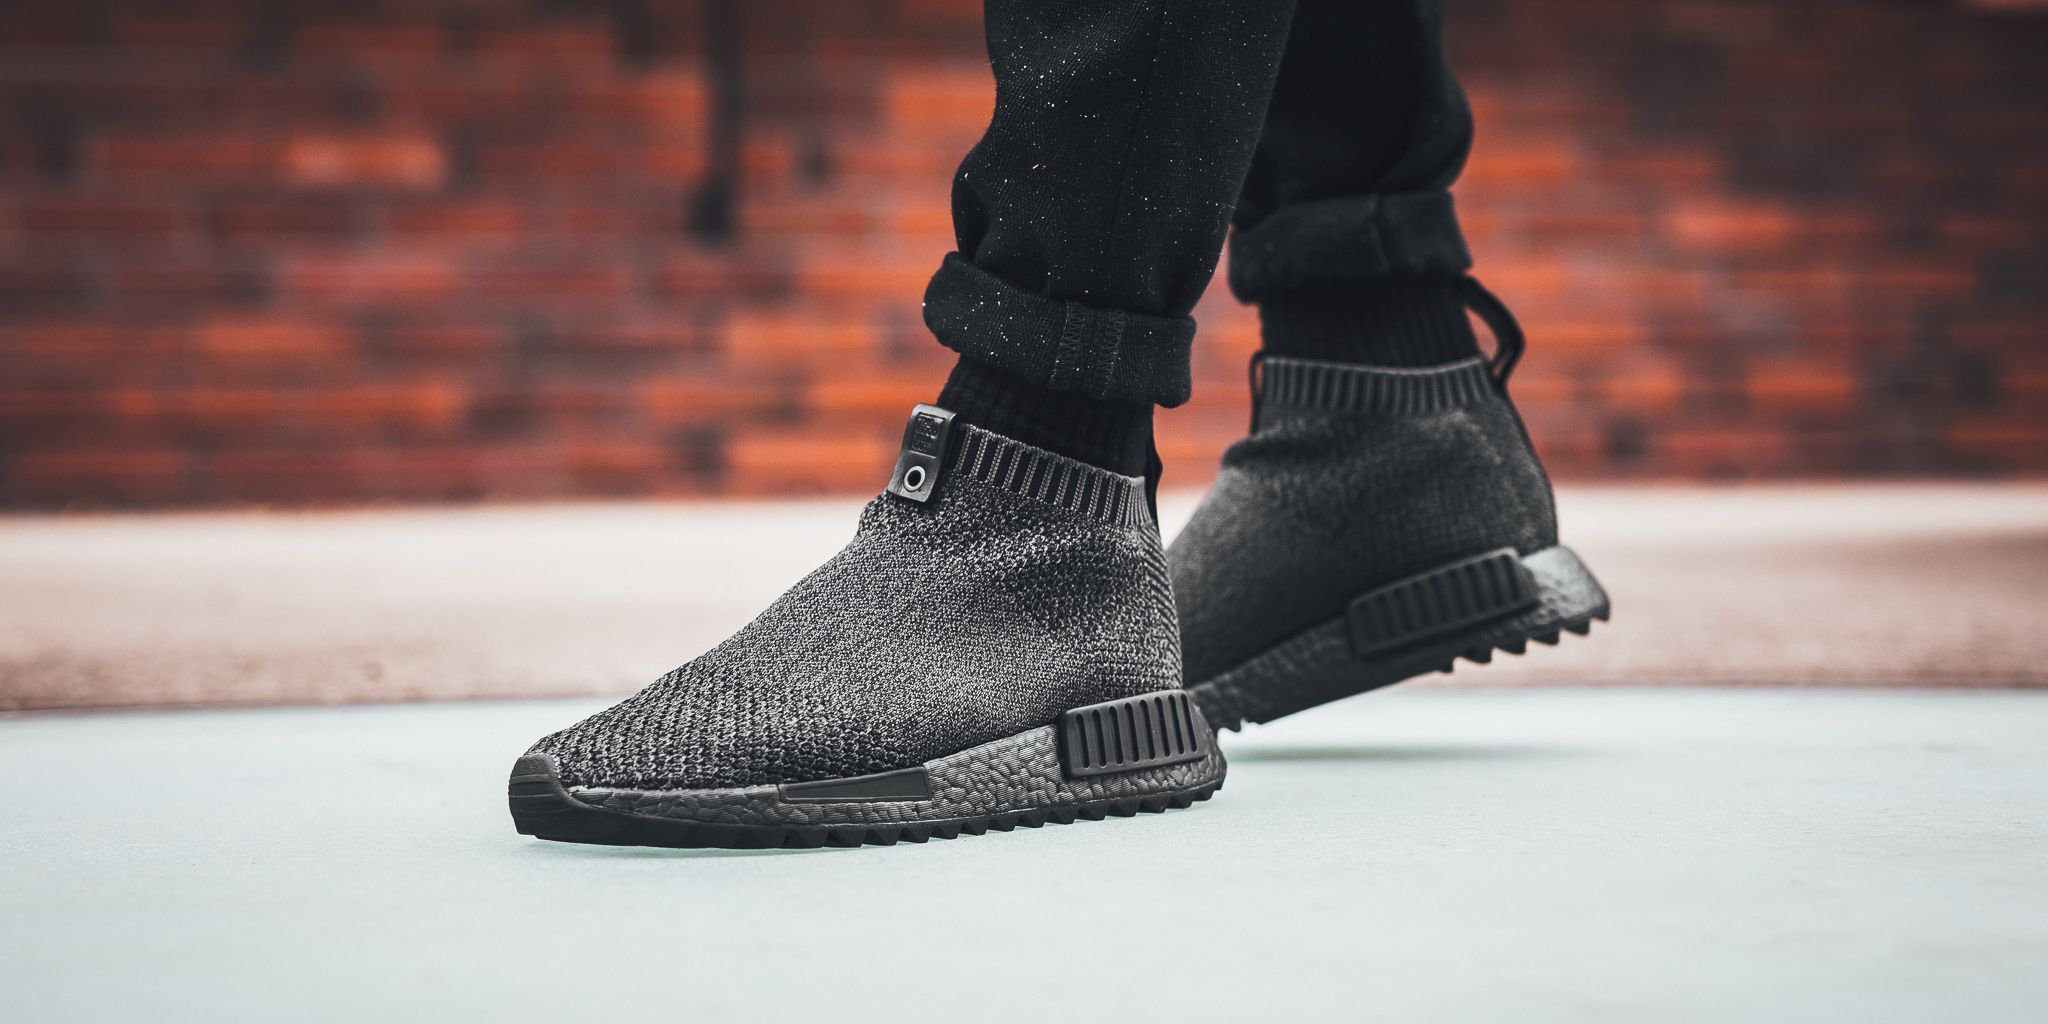 The Good Will Out X Adidas  Consortium Nmd Cs1  Primeknit RELEASE  Sat 23rd  Sep 🔺 0 00AM CET ➡️bit.ly 2xAicbN  tgwo  Shinobi 653a531be